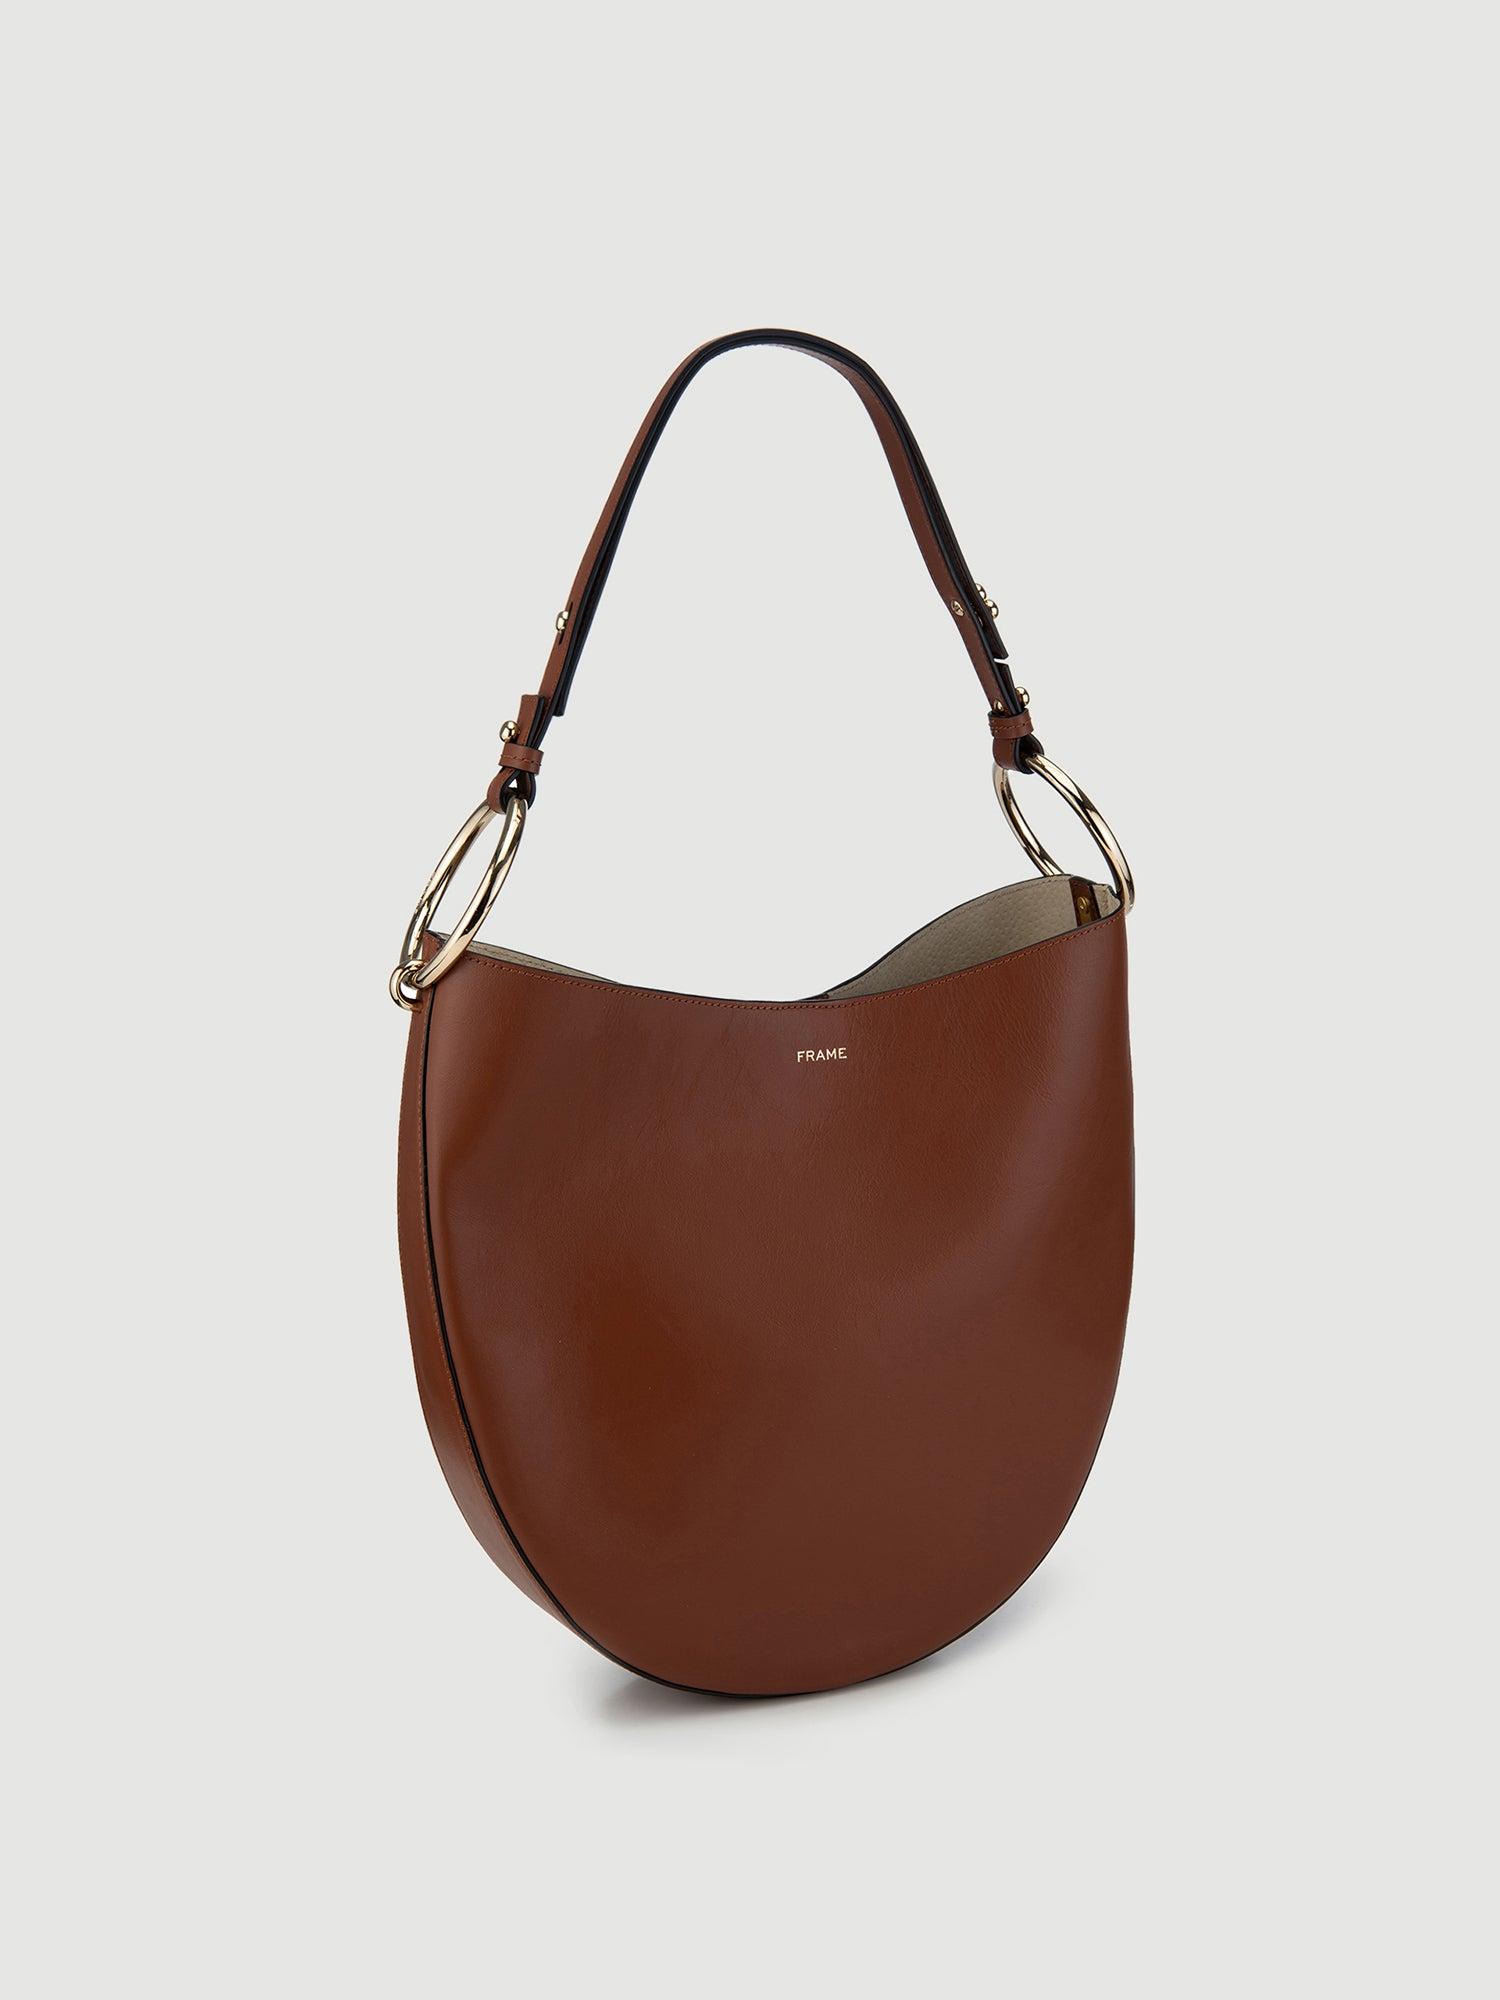 handbag side view